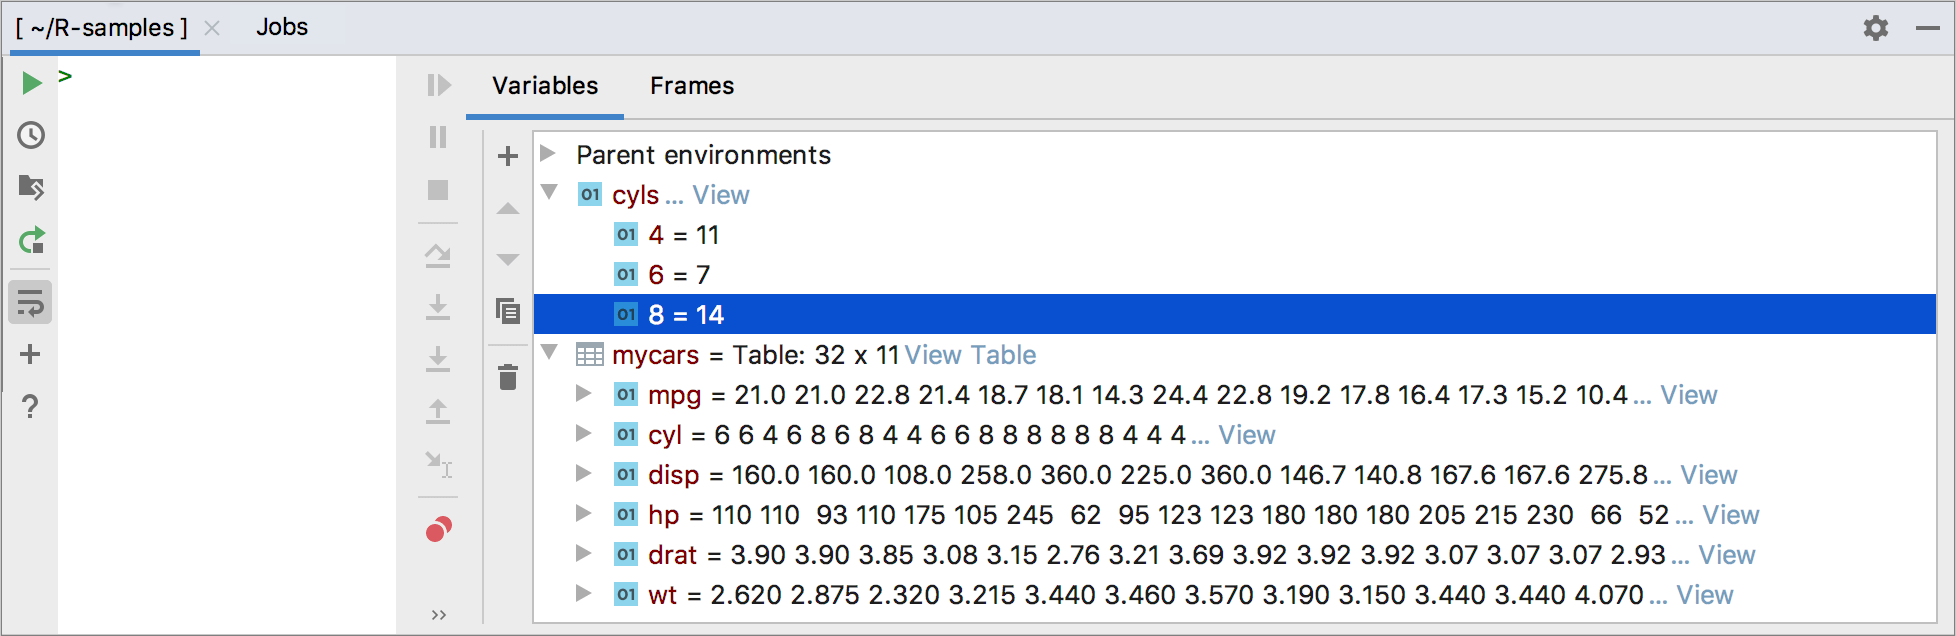 Preview variables in the R Console